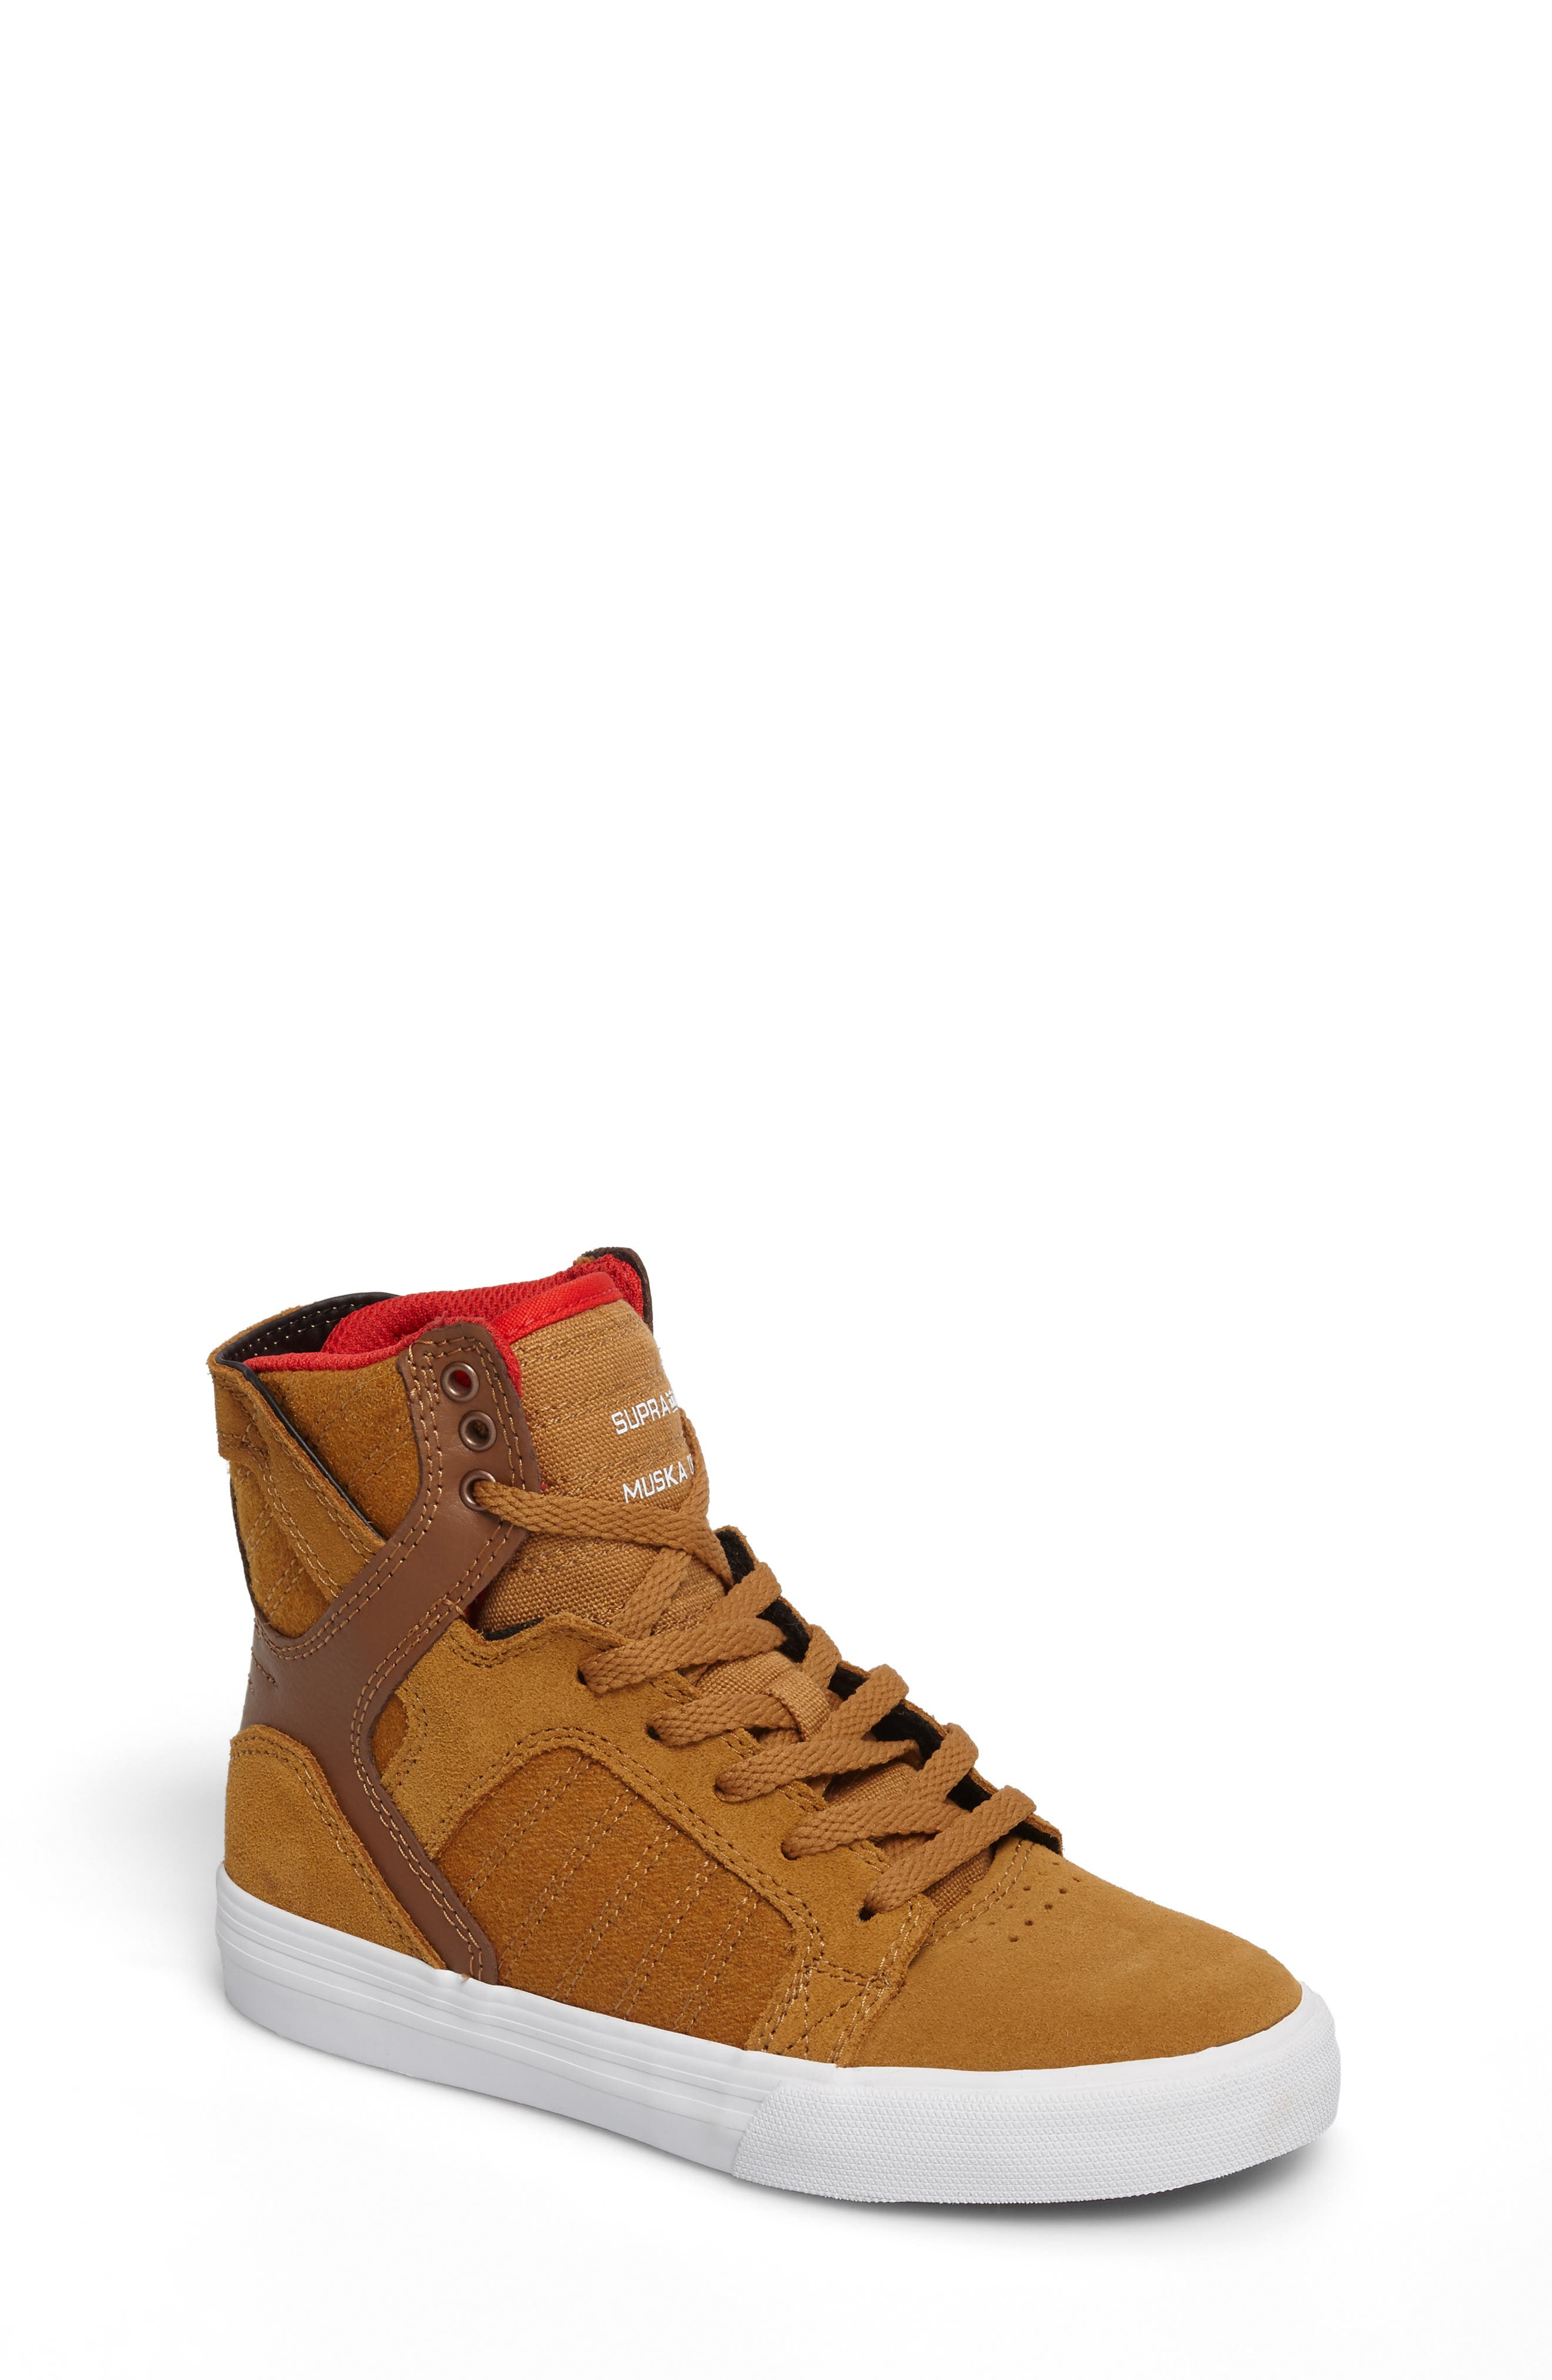 Skytop High Top Sneaker,                         Main,                         color, 257